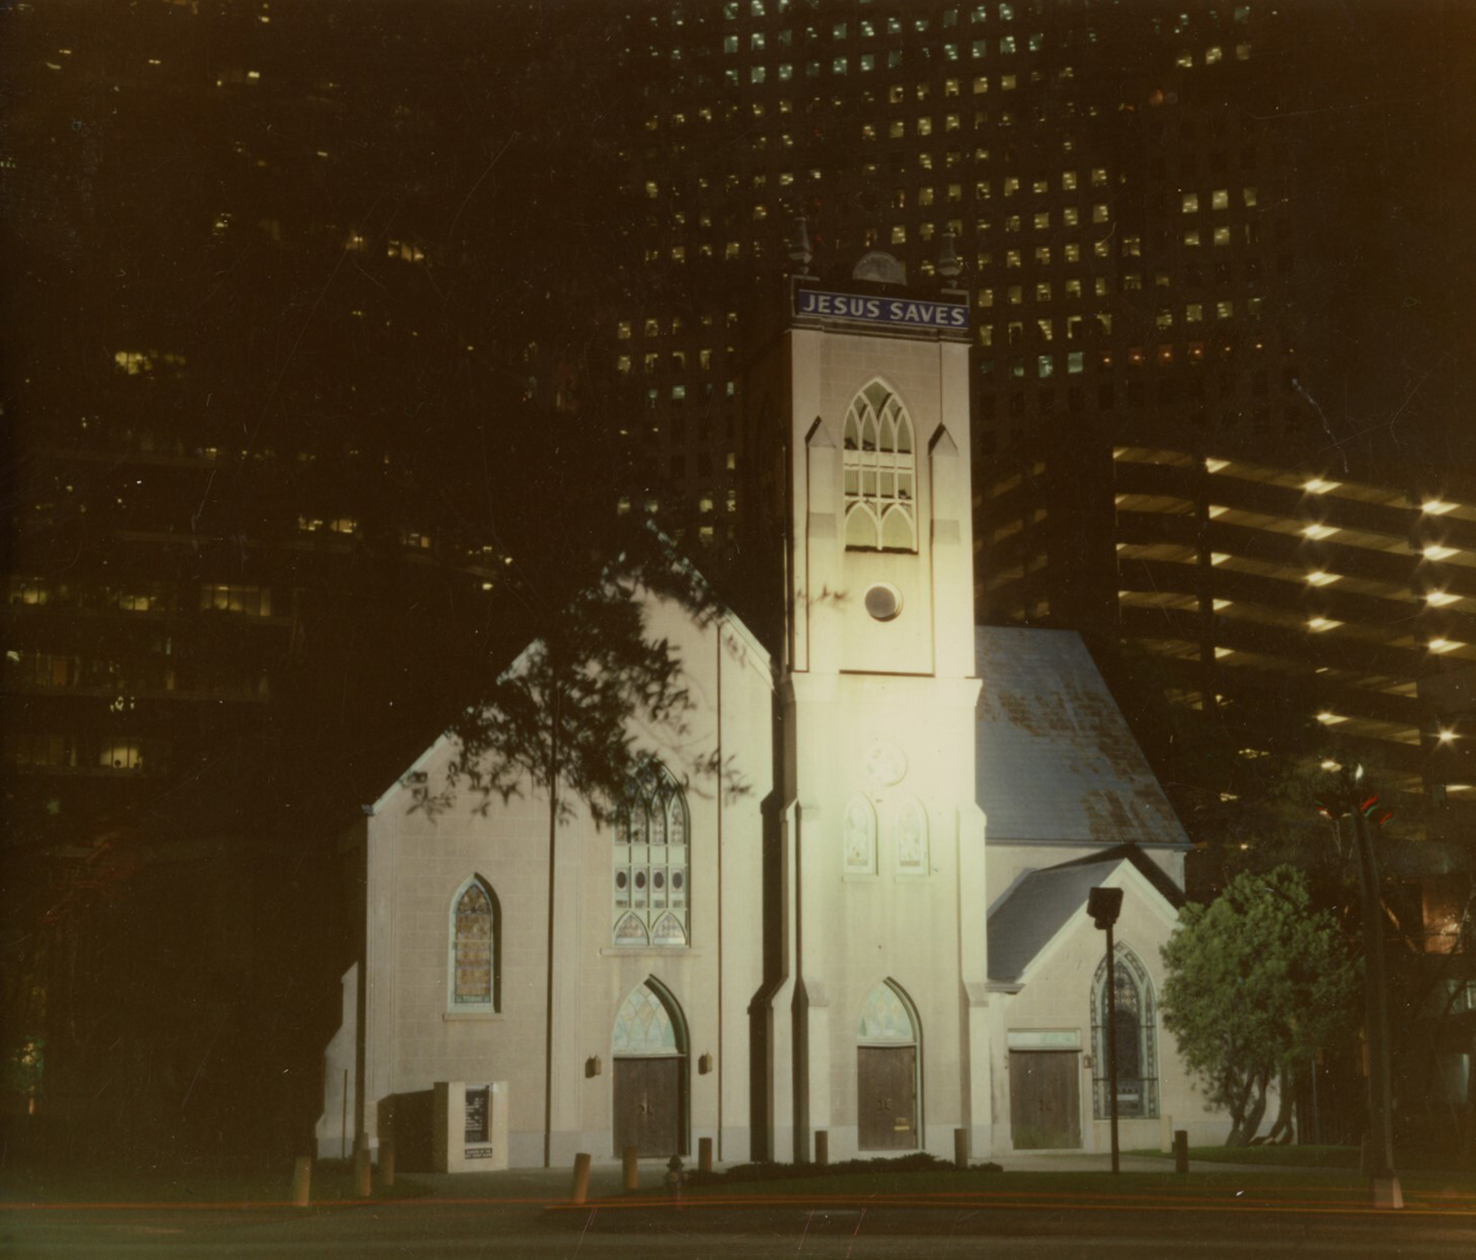 ntioch Missionary Baptist Church, cut off from the rest of Freedmen's Town by I-45